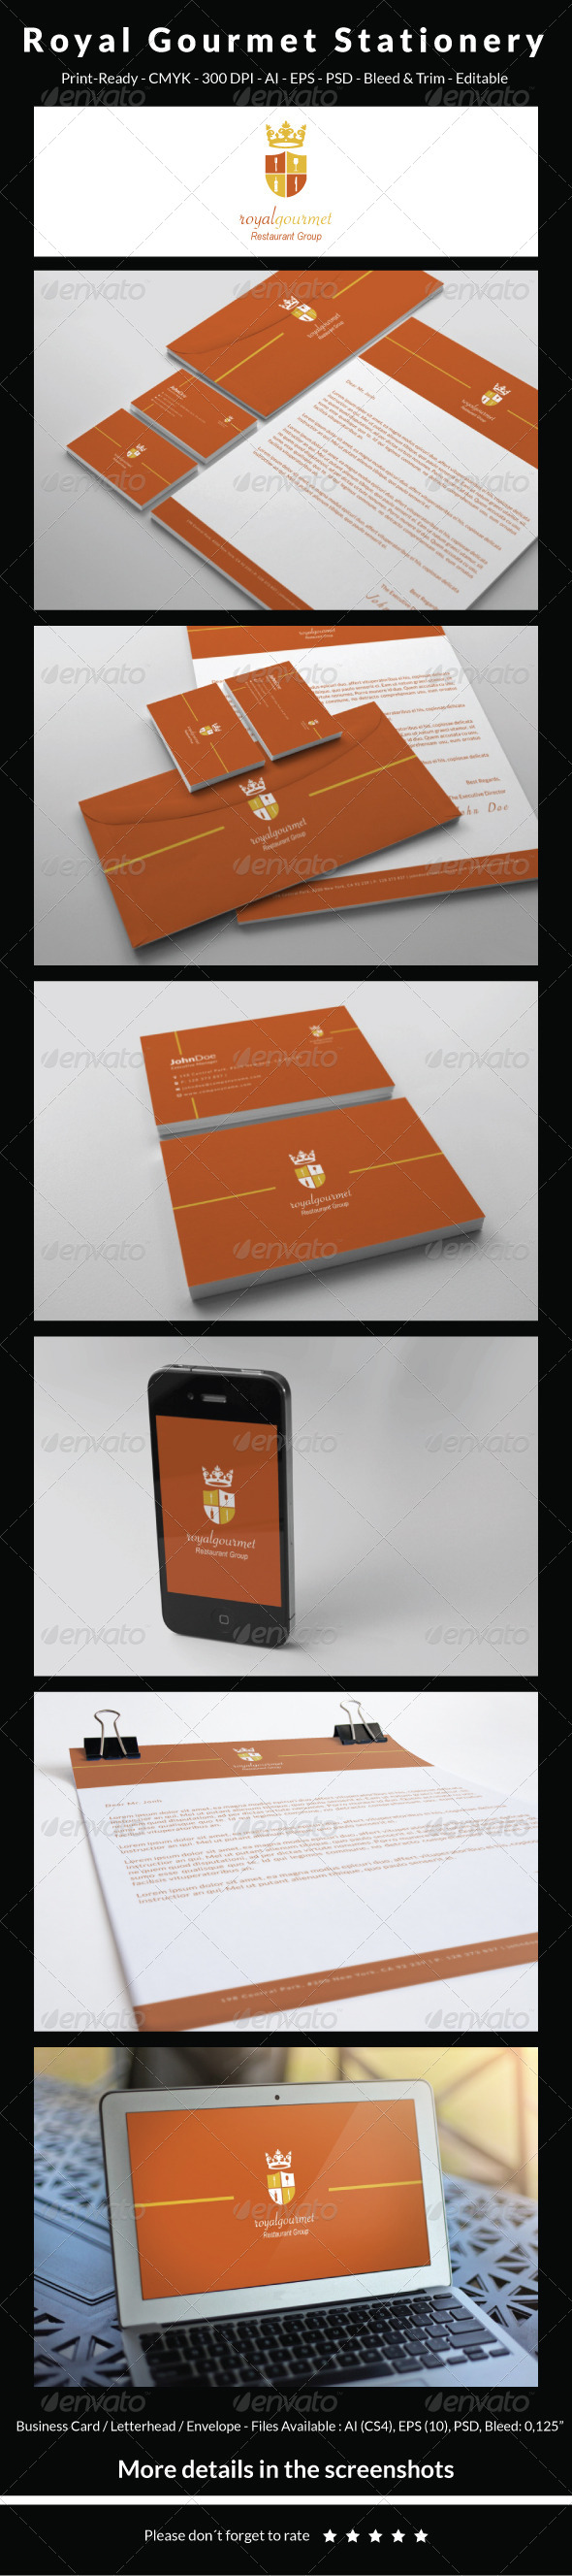 Royal Gourmet - Stationery - Stationery Print Templates